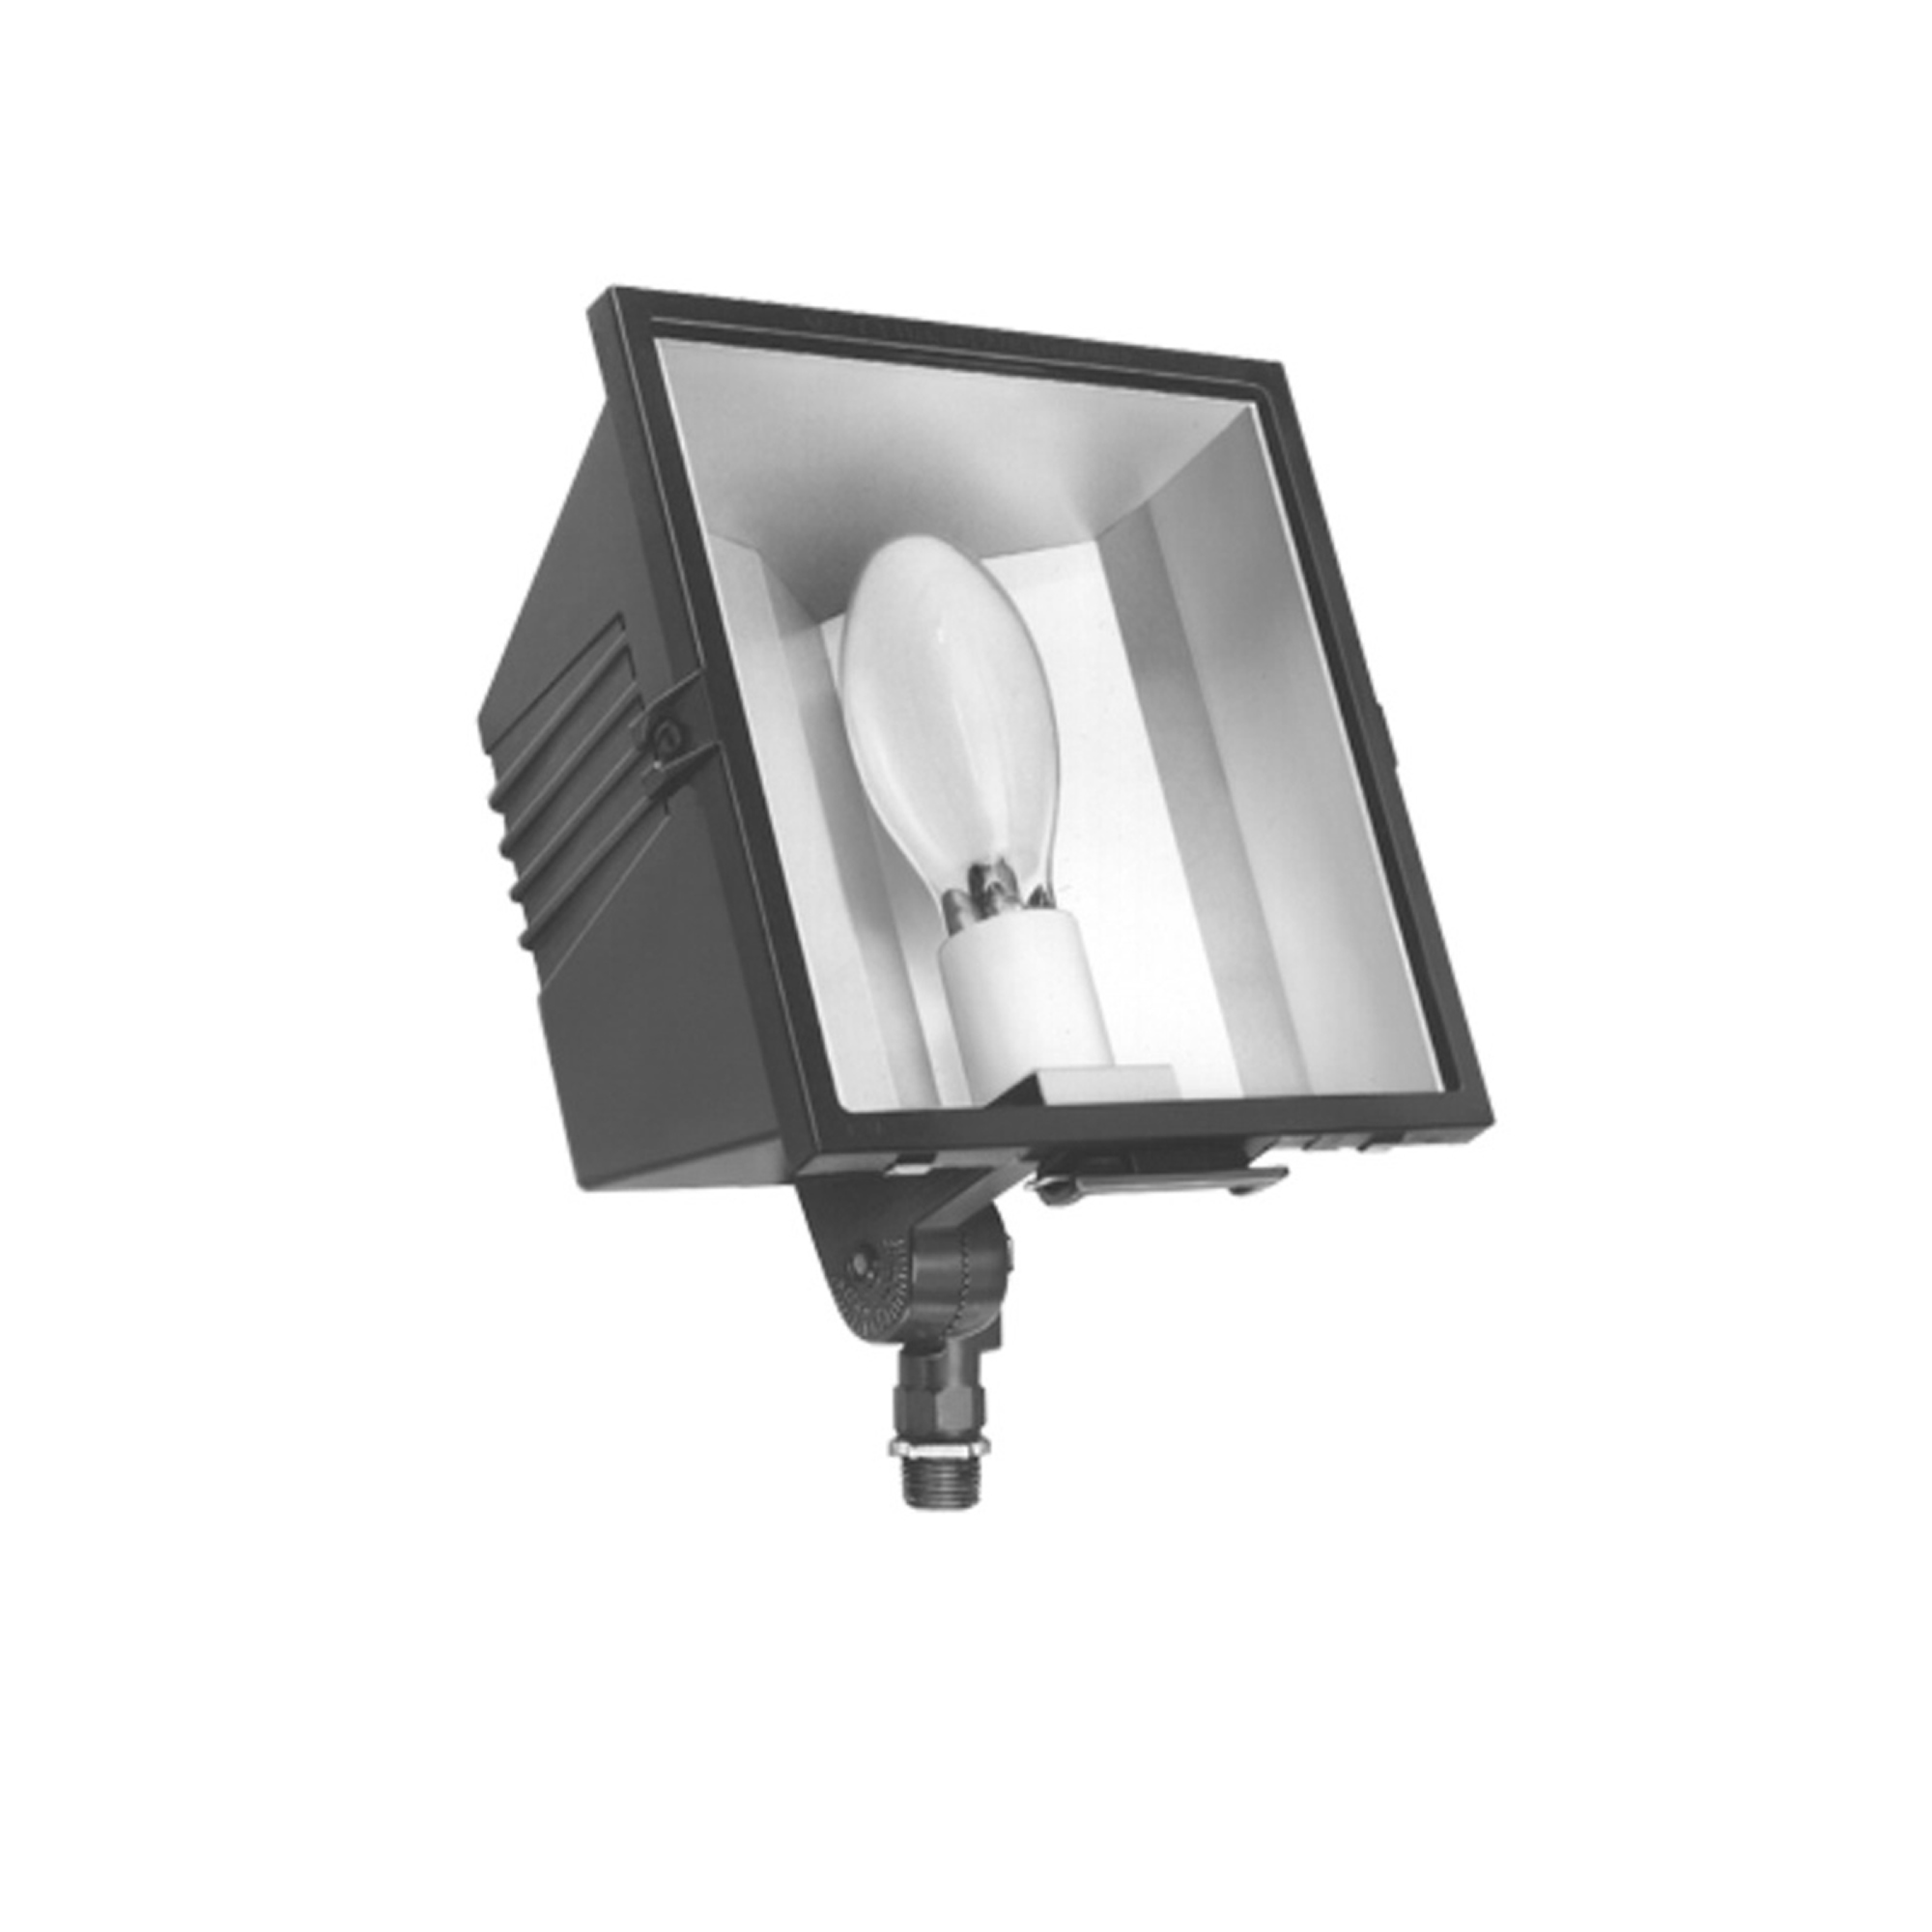 Are Metal Halide Lights Dangerous: STONCO LIGHTING GP GP3 3T400PMAL-8 FLOOD LIGHT 400W PULSE